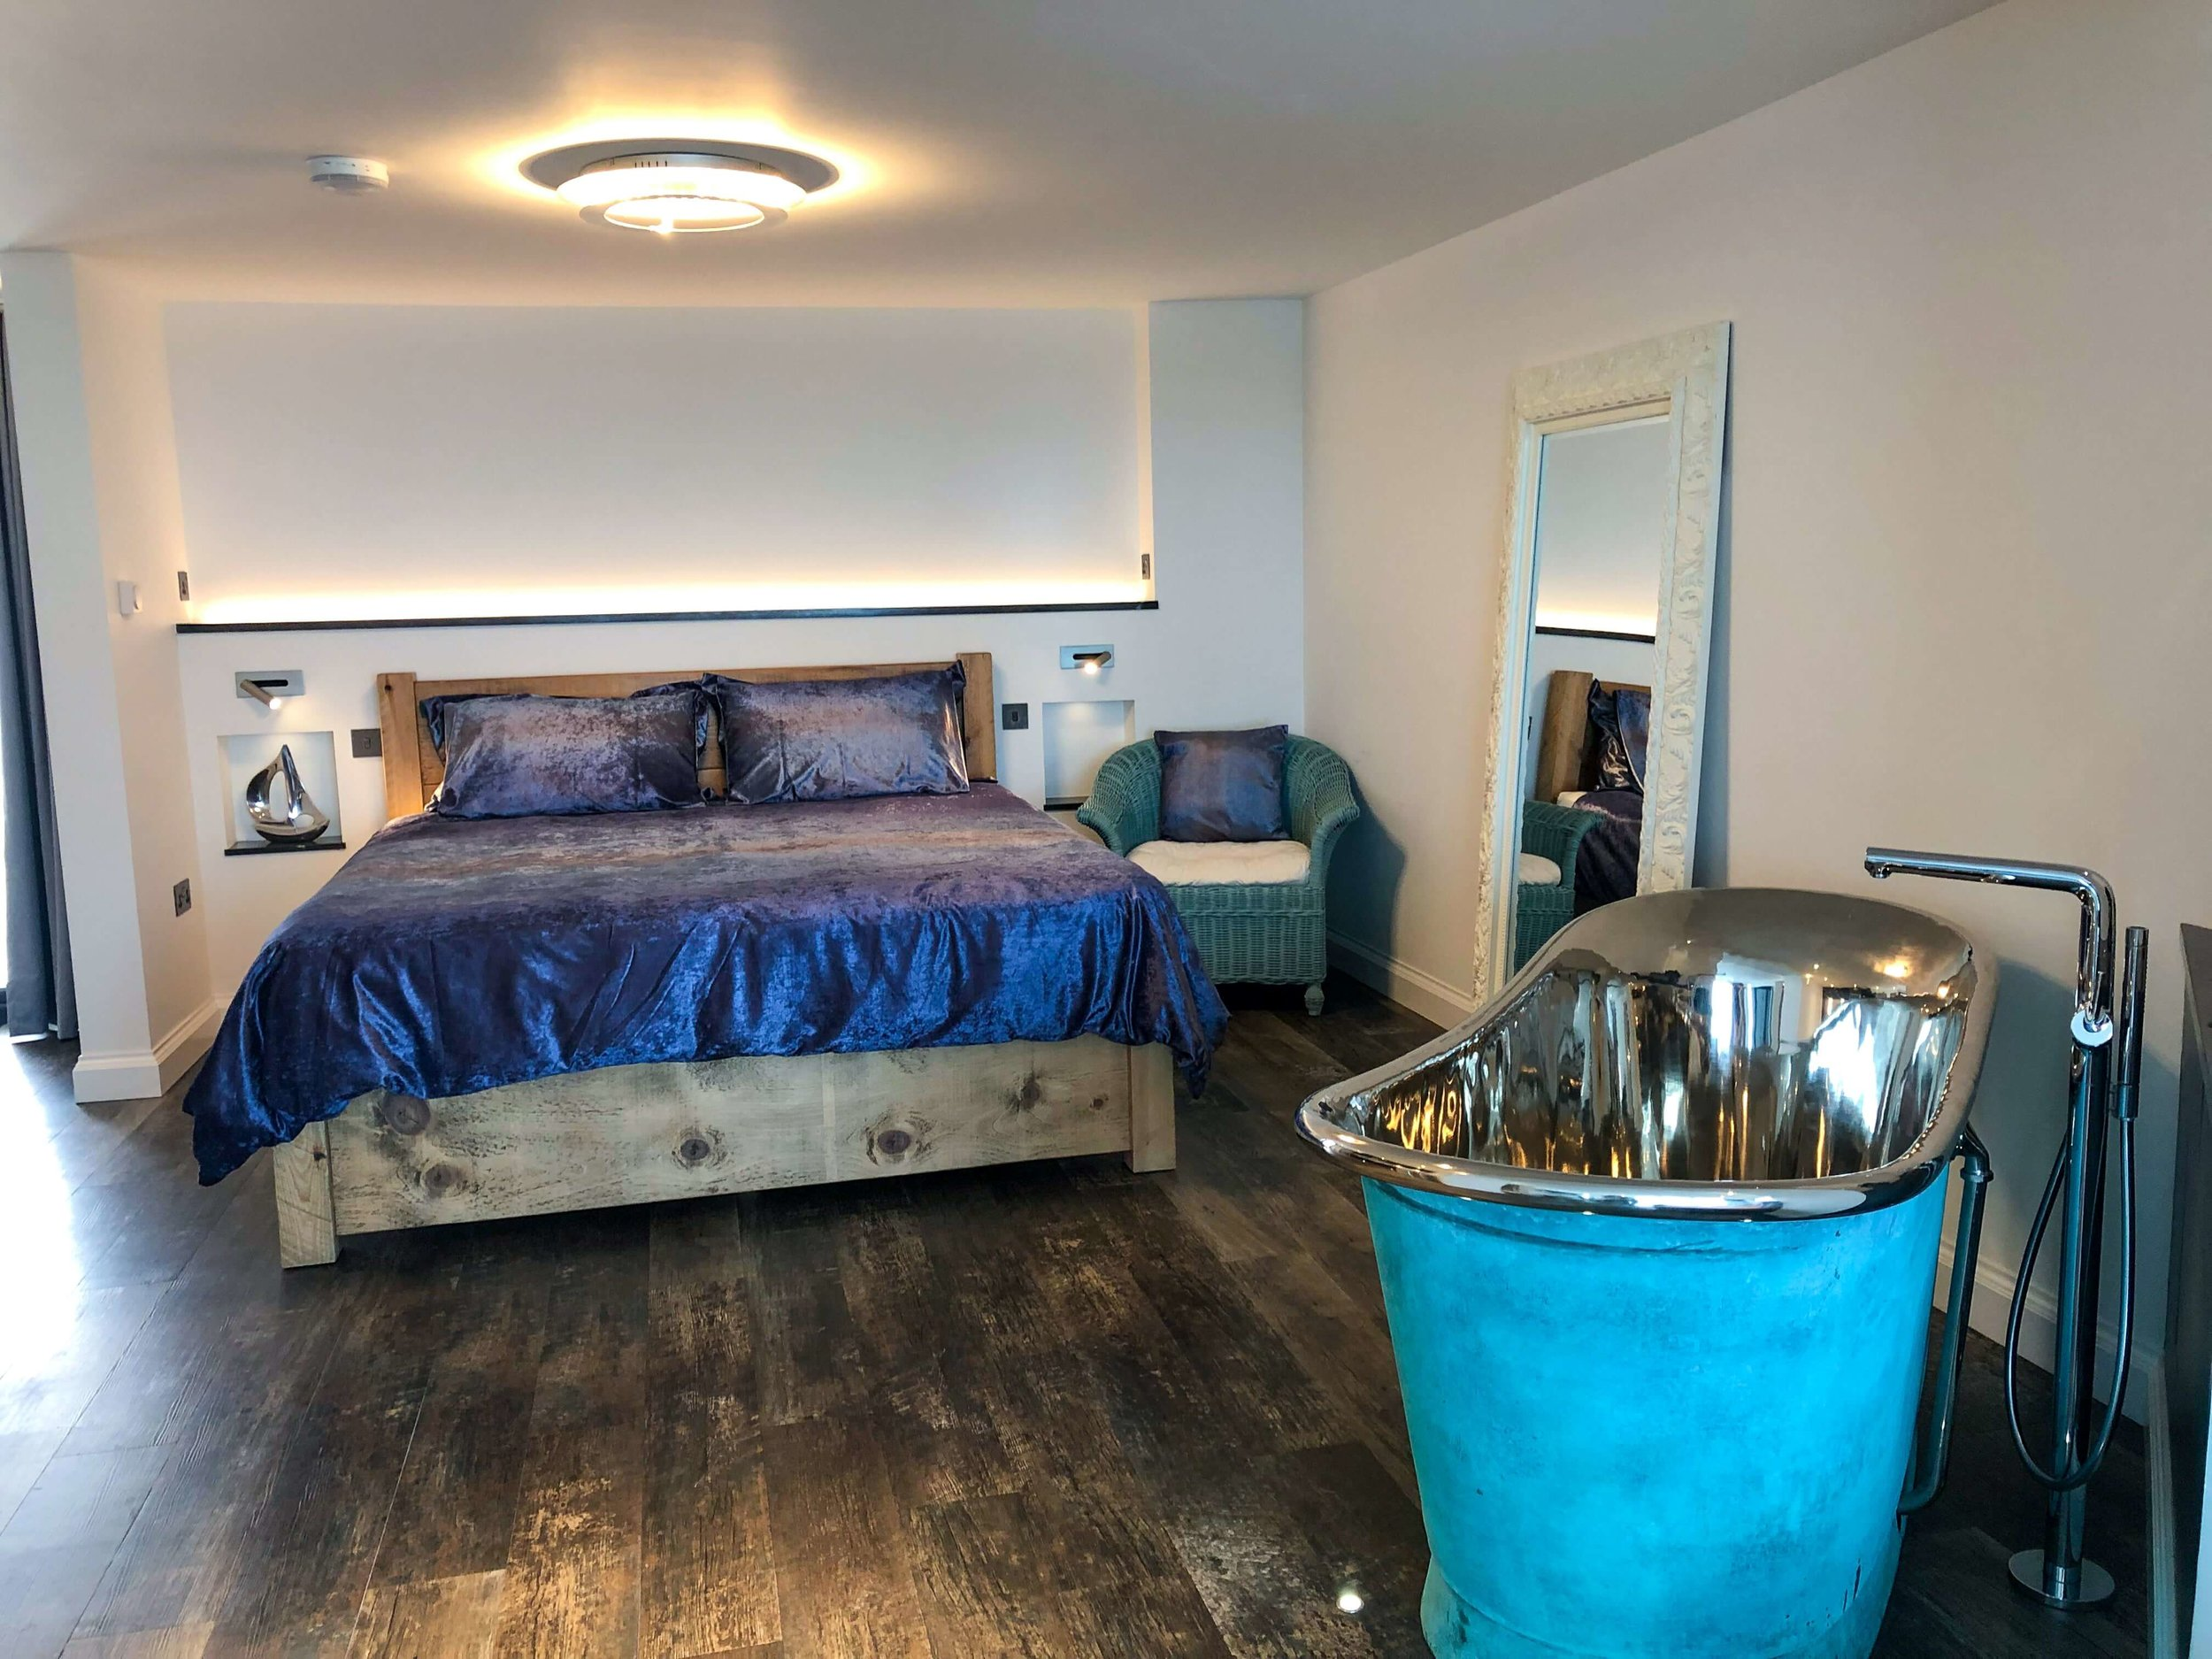 Open plan bedroom with super-king size bed and memory foam mattress